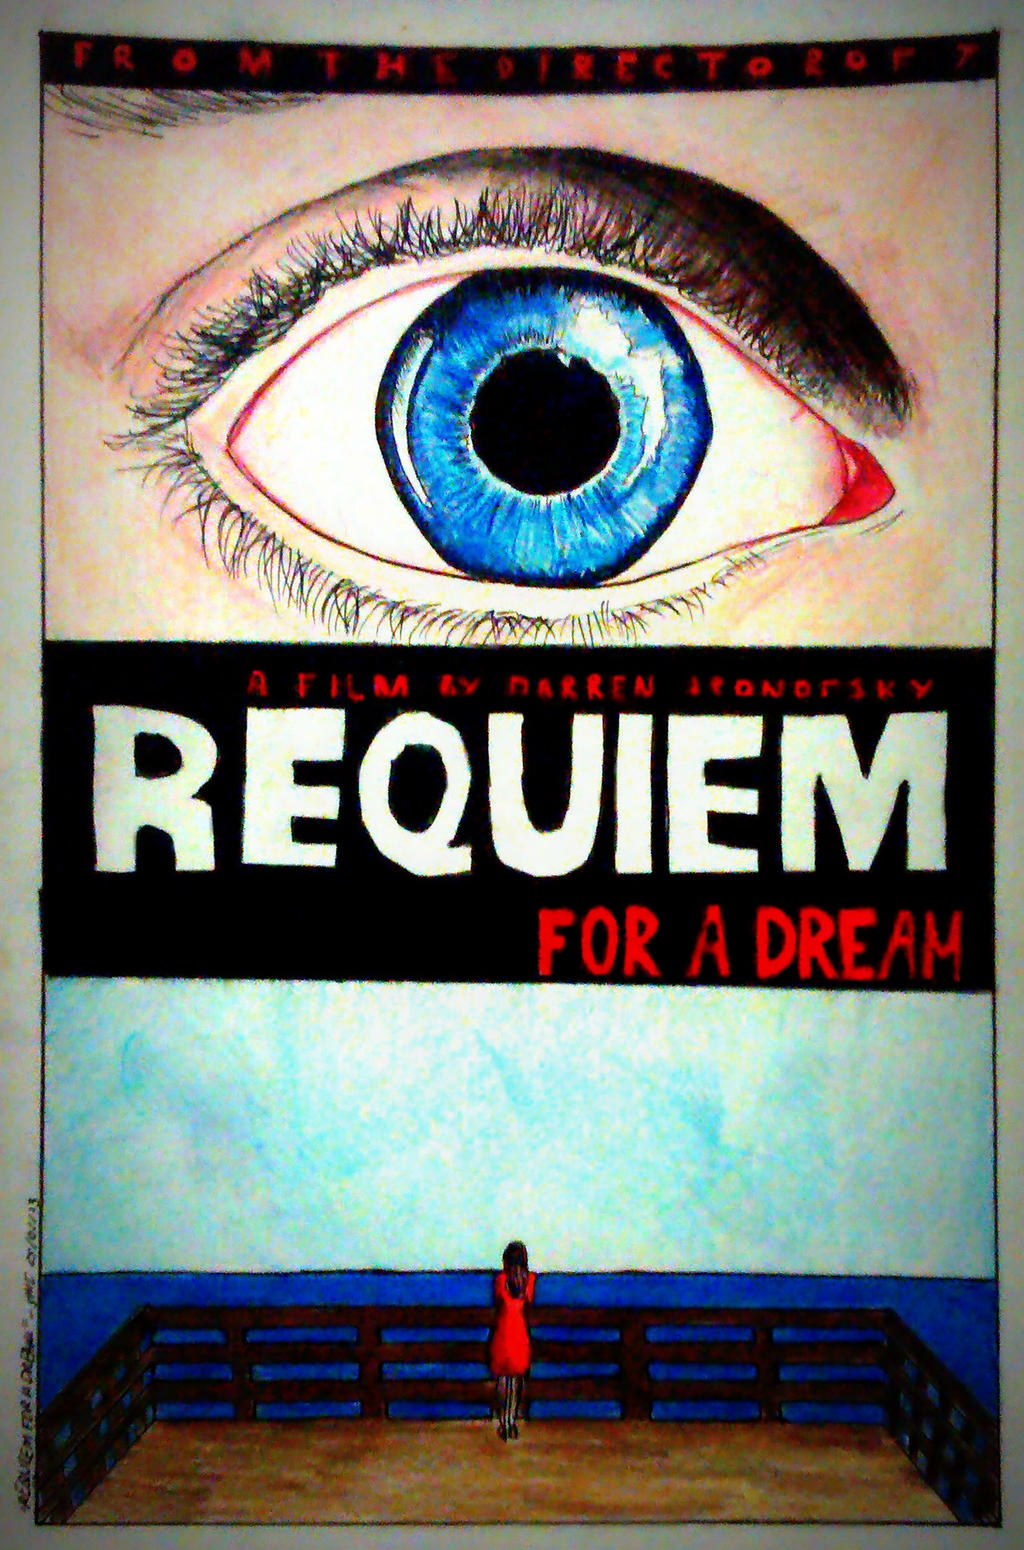 Requiem For A Dream Poster by intothewild142 on DeviantArt